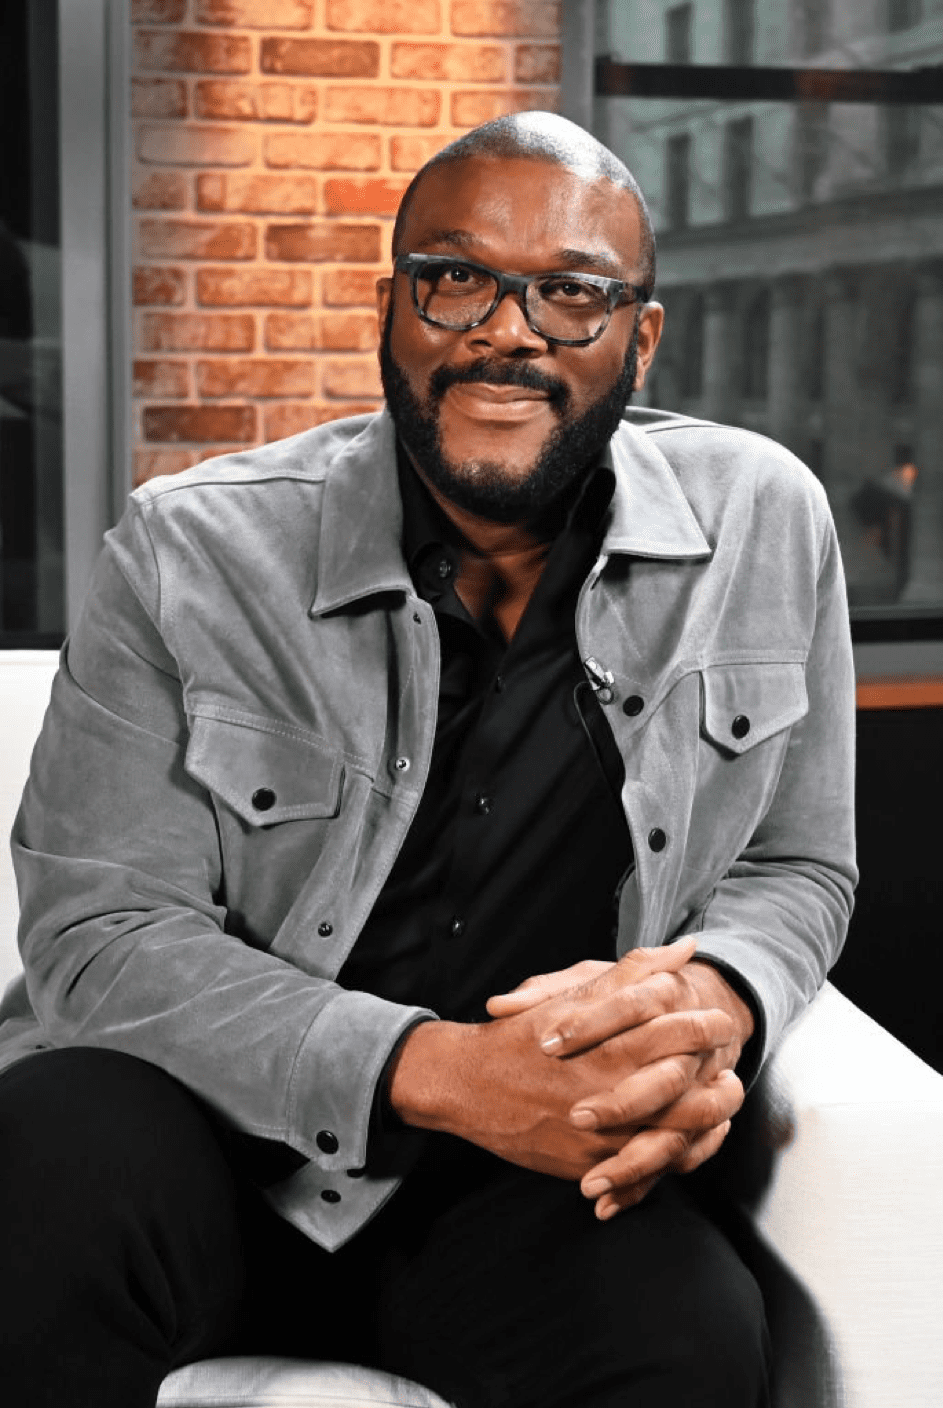 Tyler Perry bei den LinkedIn Studios am 13.91.20 in New York. | Quelle: Getty Images